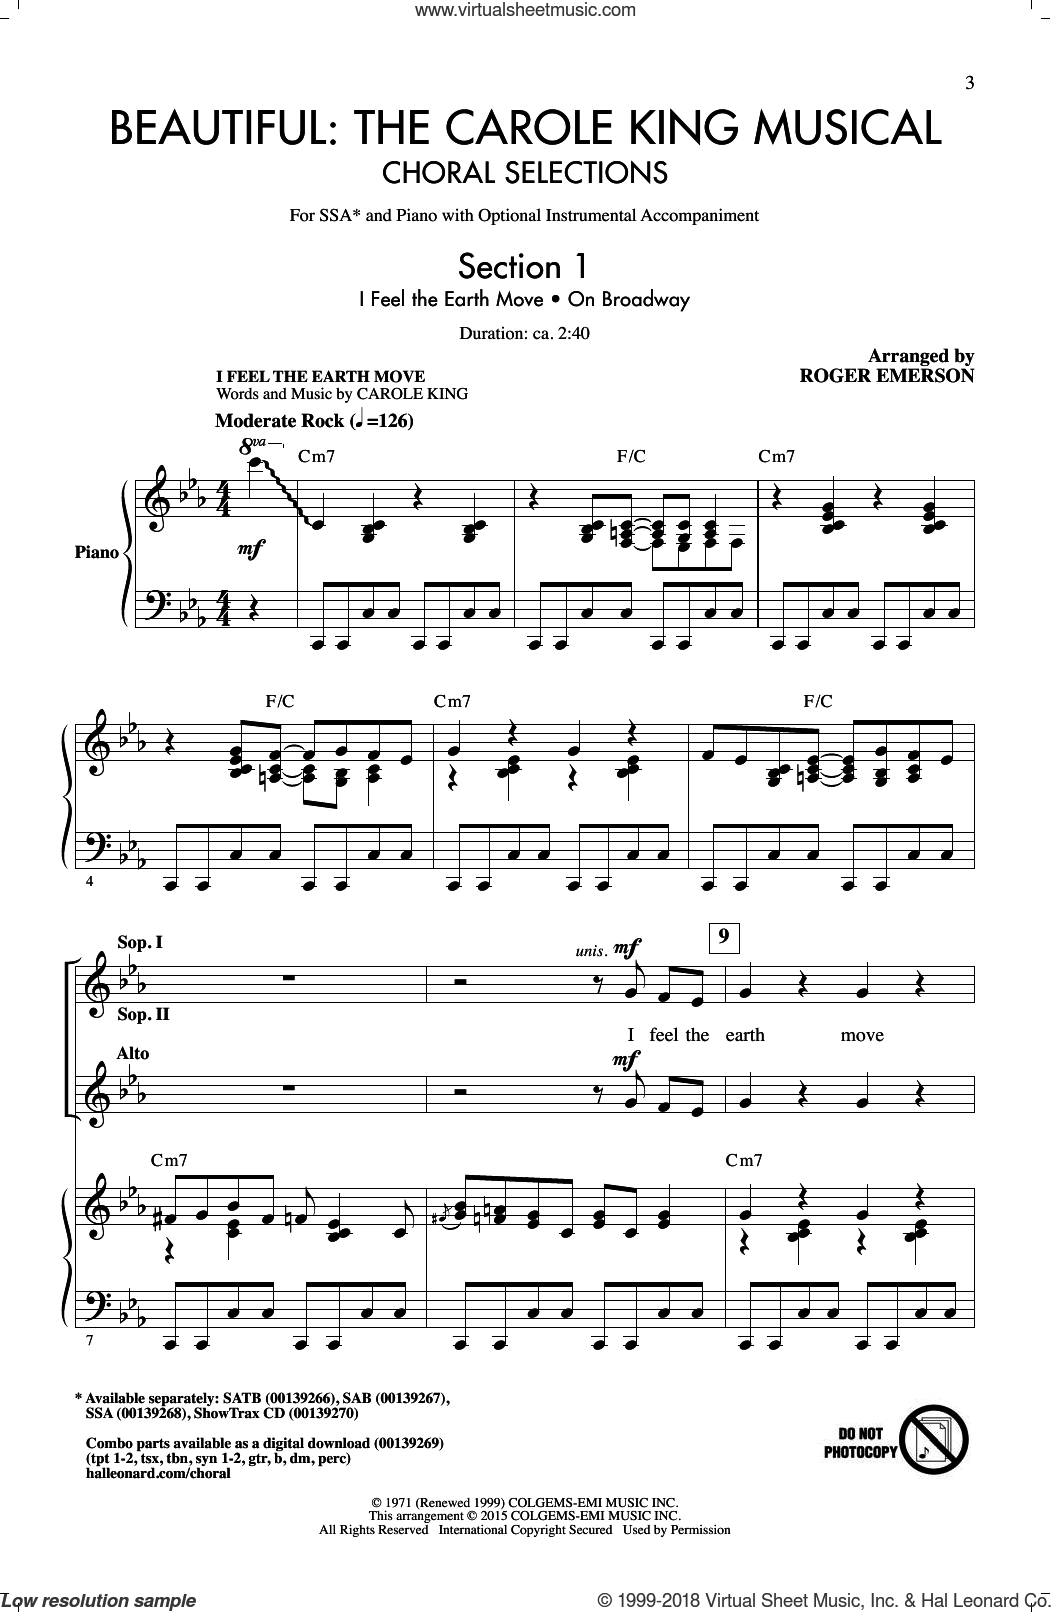 Beautiful: The Carole King Musical (Choral Selections) sheet music for choir and piano (SSA) by Roger Emerson and Carole King. Score Image Preview.